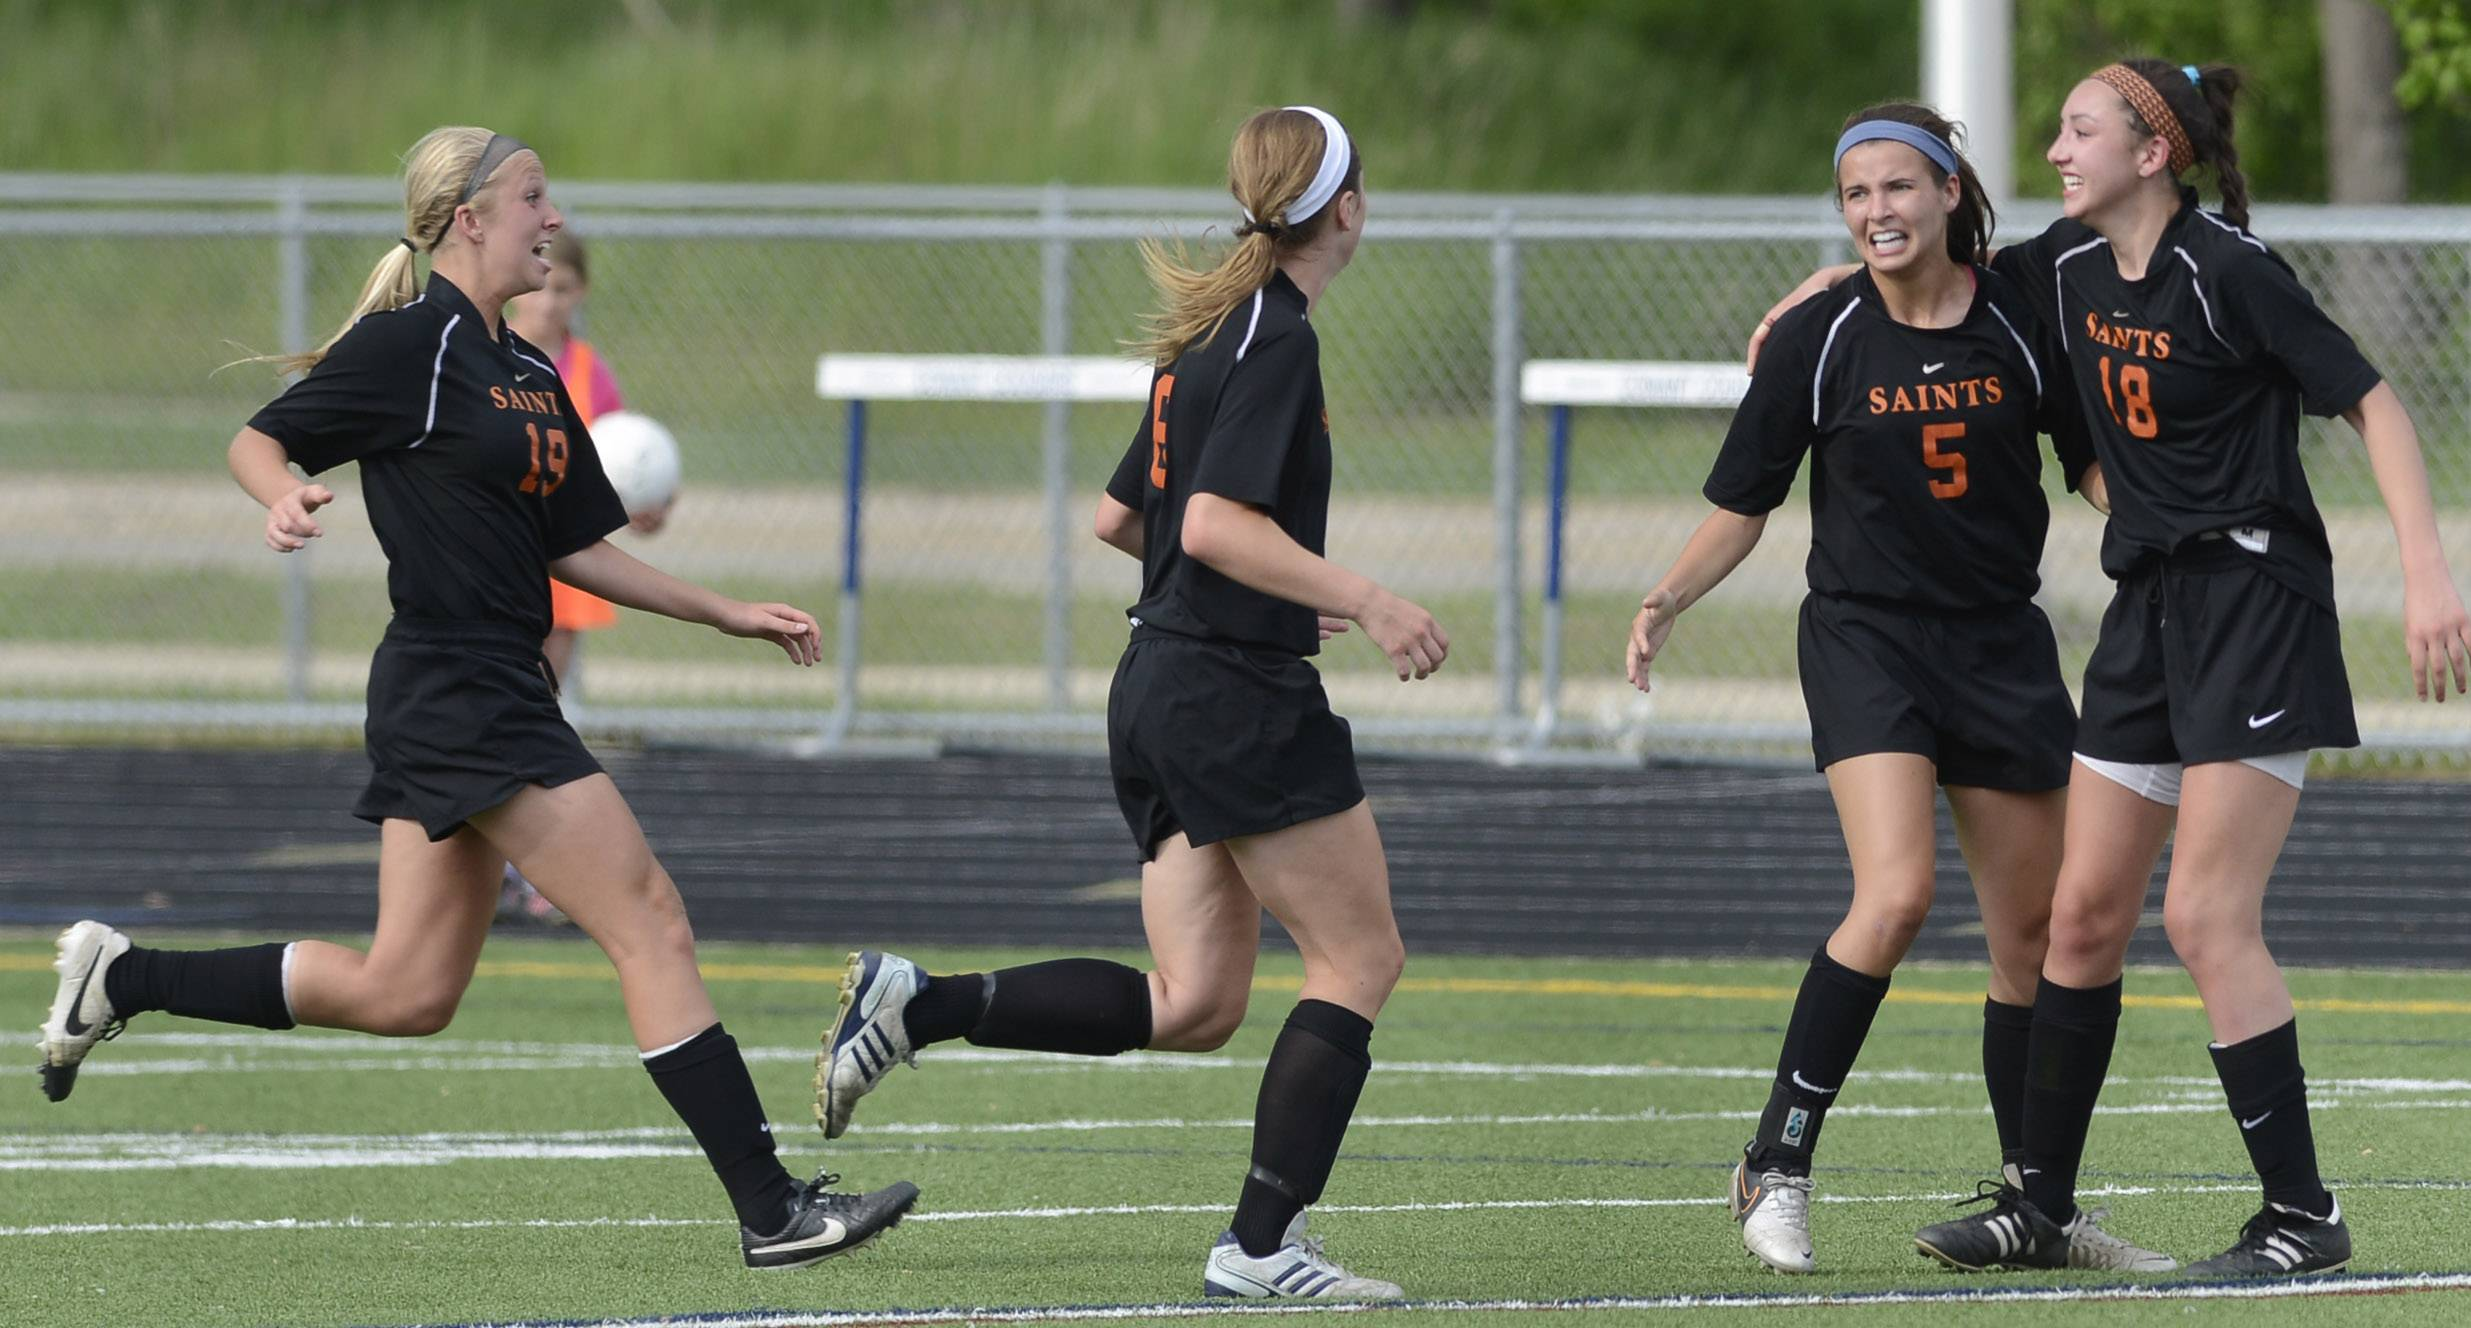 From left to right, St. Charles East's Sophie Jendrzeczyk, Kelli Santo Paolo, Shannon Rasmussen and Mallory Mollenhauer celebrate their team's second goal of the first half at the Class 3A Conant sectional semifinal against St. Charles North in Hoffman Estates Tuesday.